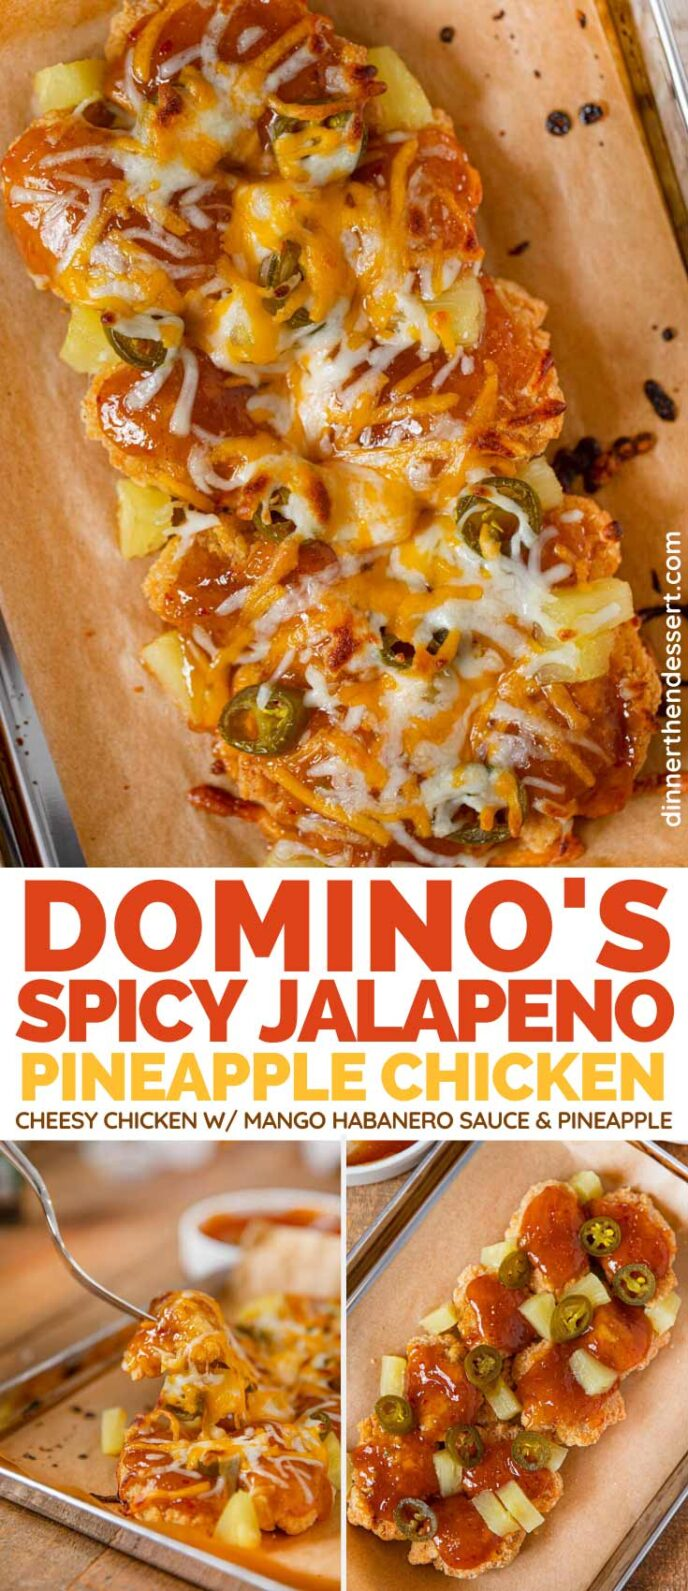 Domino's Spicy Jalapeno Pineapple Chicken (Copycat) collage